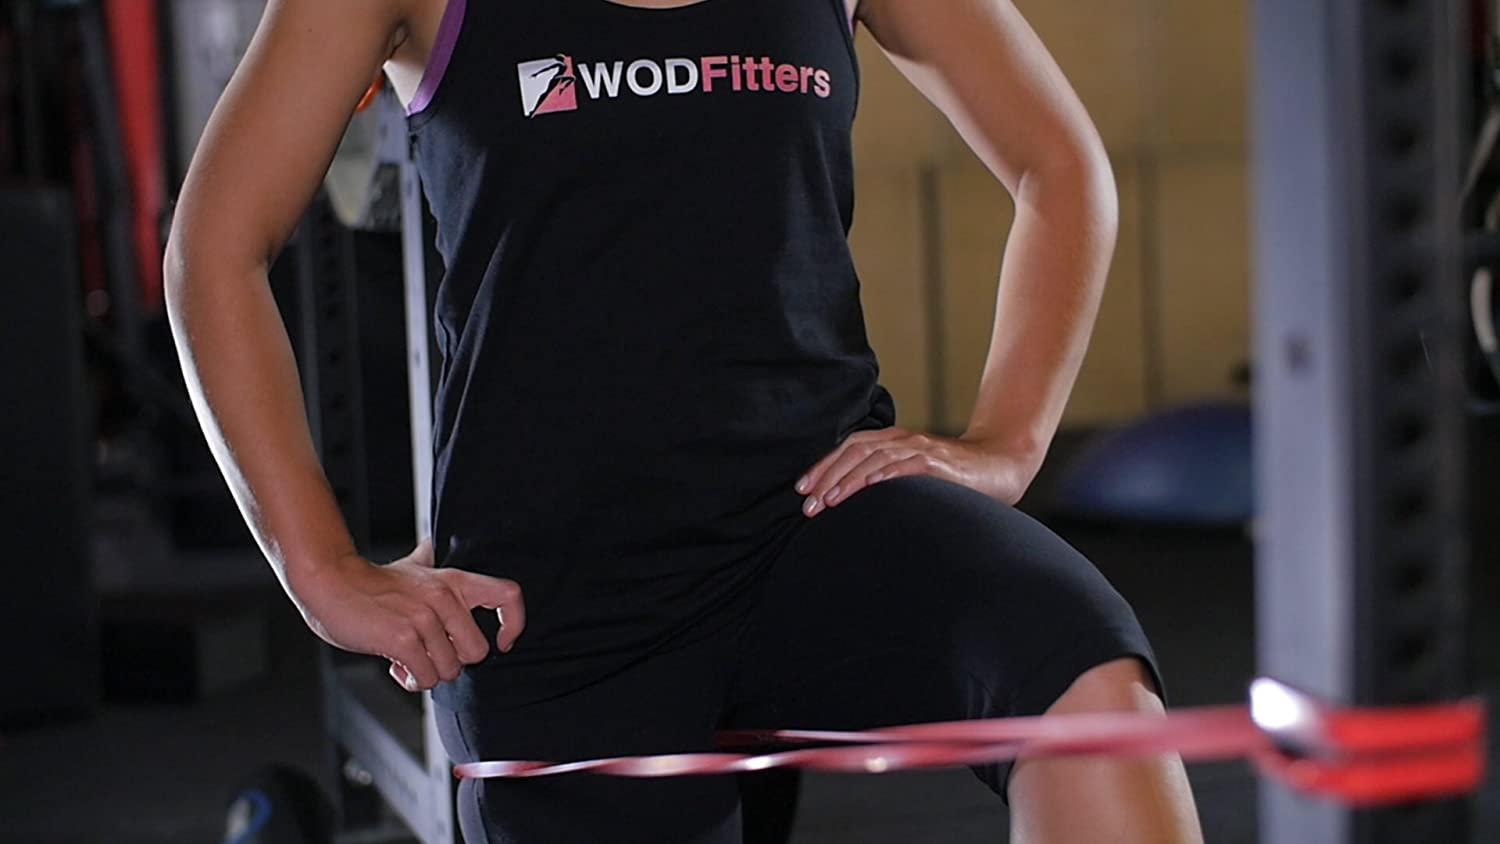 WODFitters Stretch Resistance Pull Up Assist Band